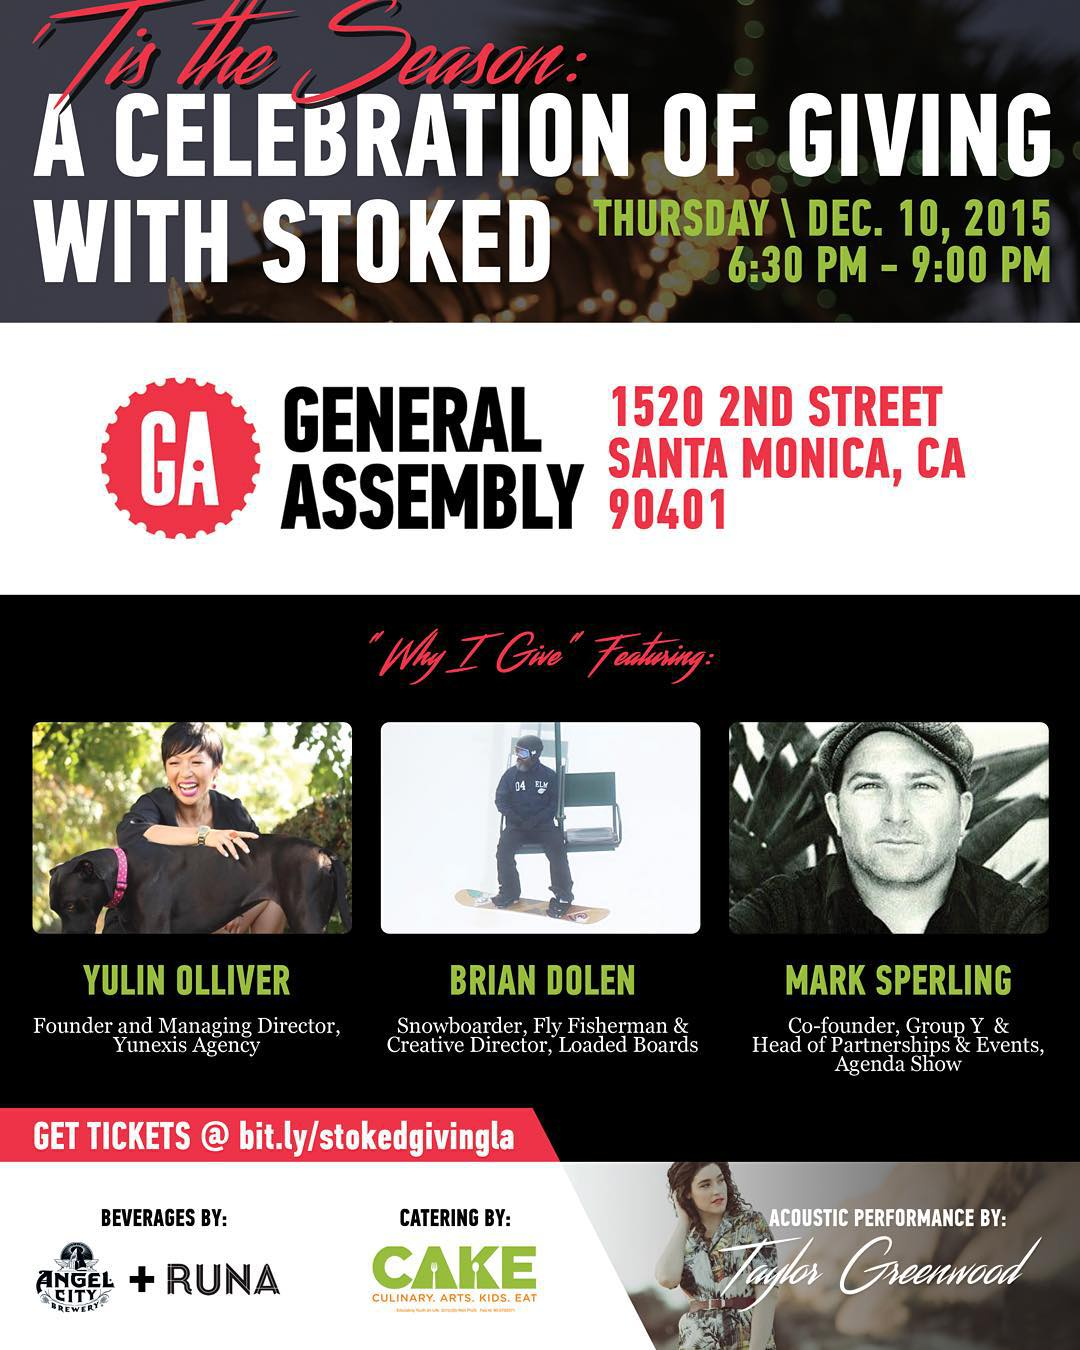 Last call, LA! Join us for a fantastic evening of food and drink from @drinkruna @angelcitybeer, CAKE, music from @taylorgmusic & an inspiring discussion featuring @yulino @yunexisagency @loadedboards @groupy @agendashow! A few tickets are still...